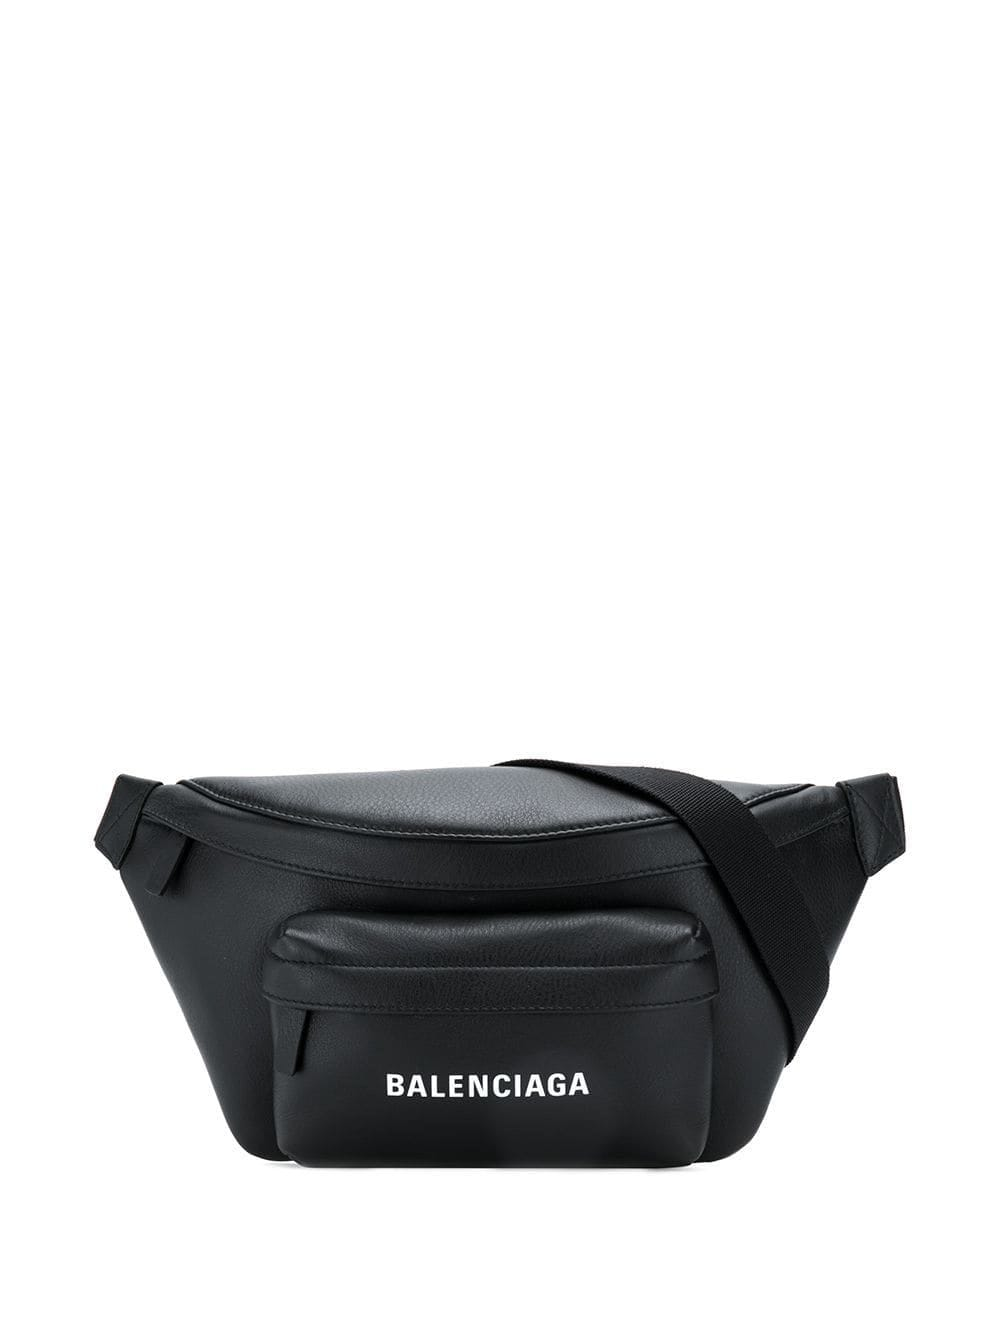 BALENCIAGA logo belt bag black